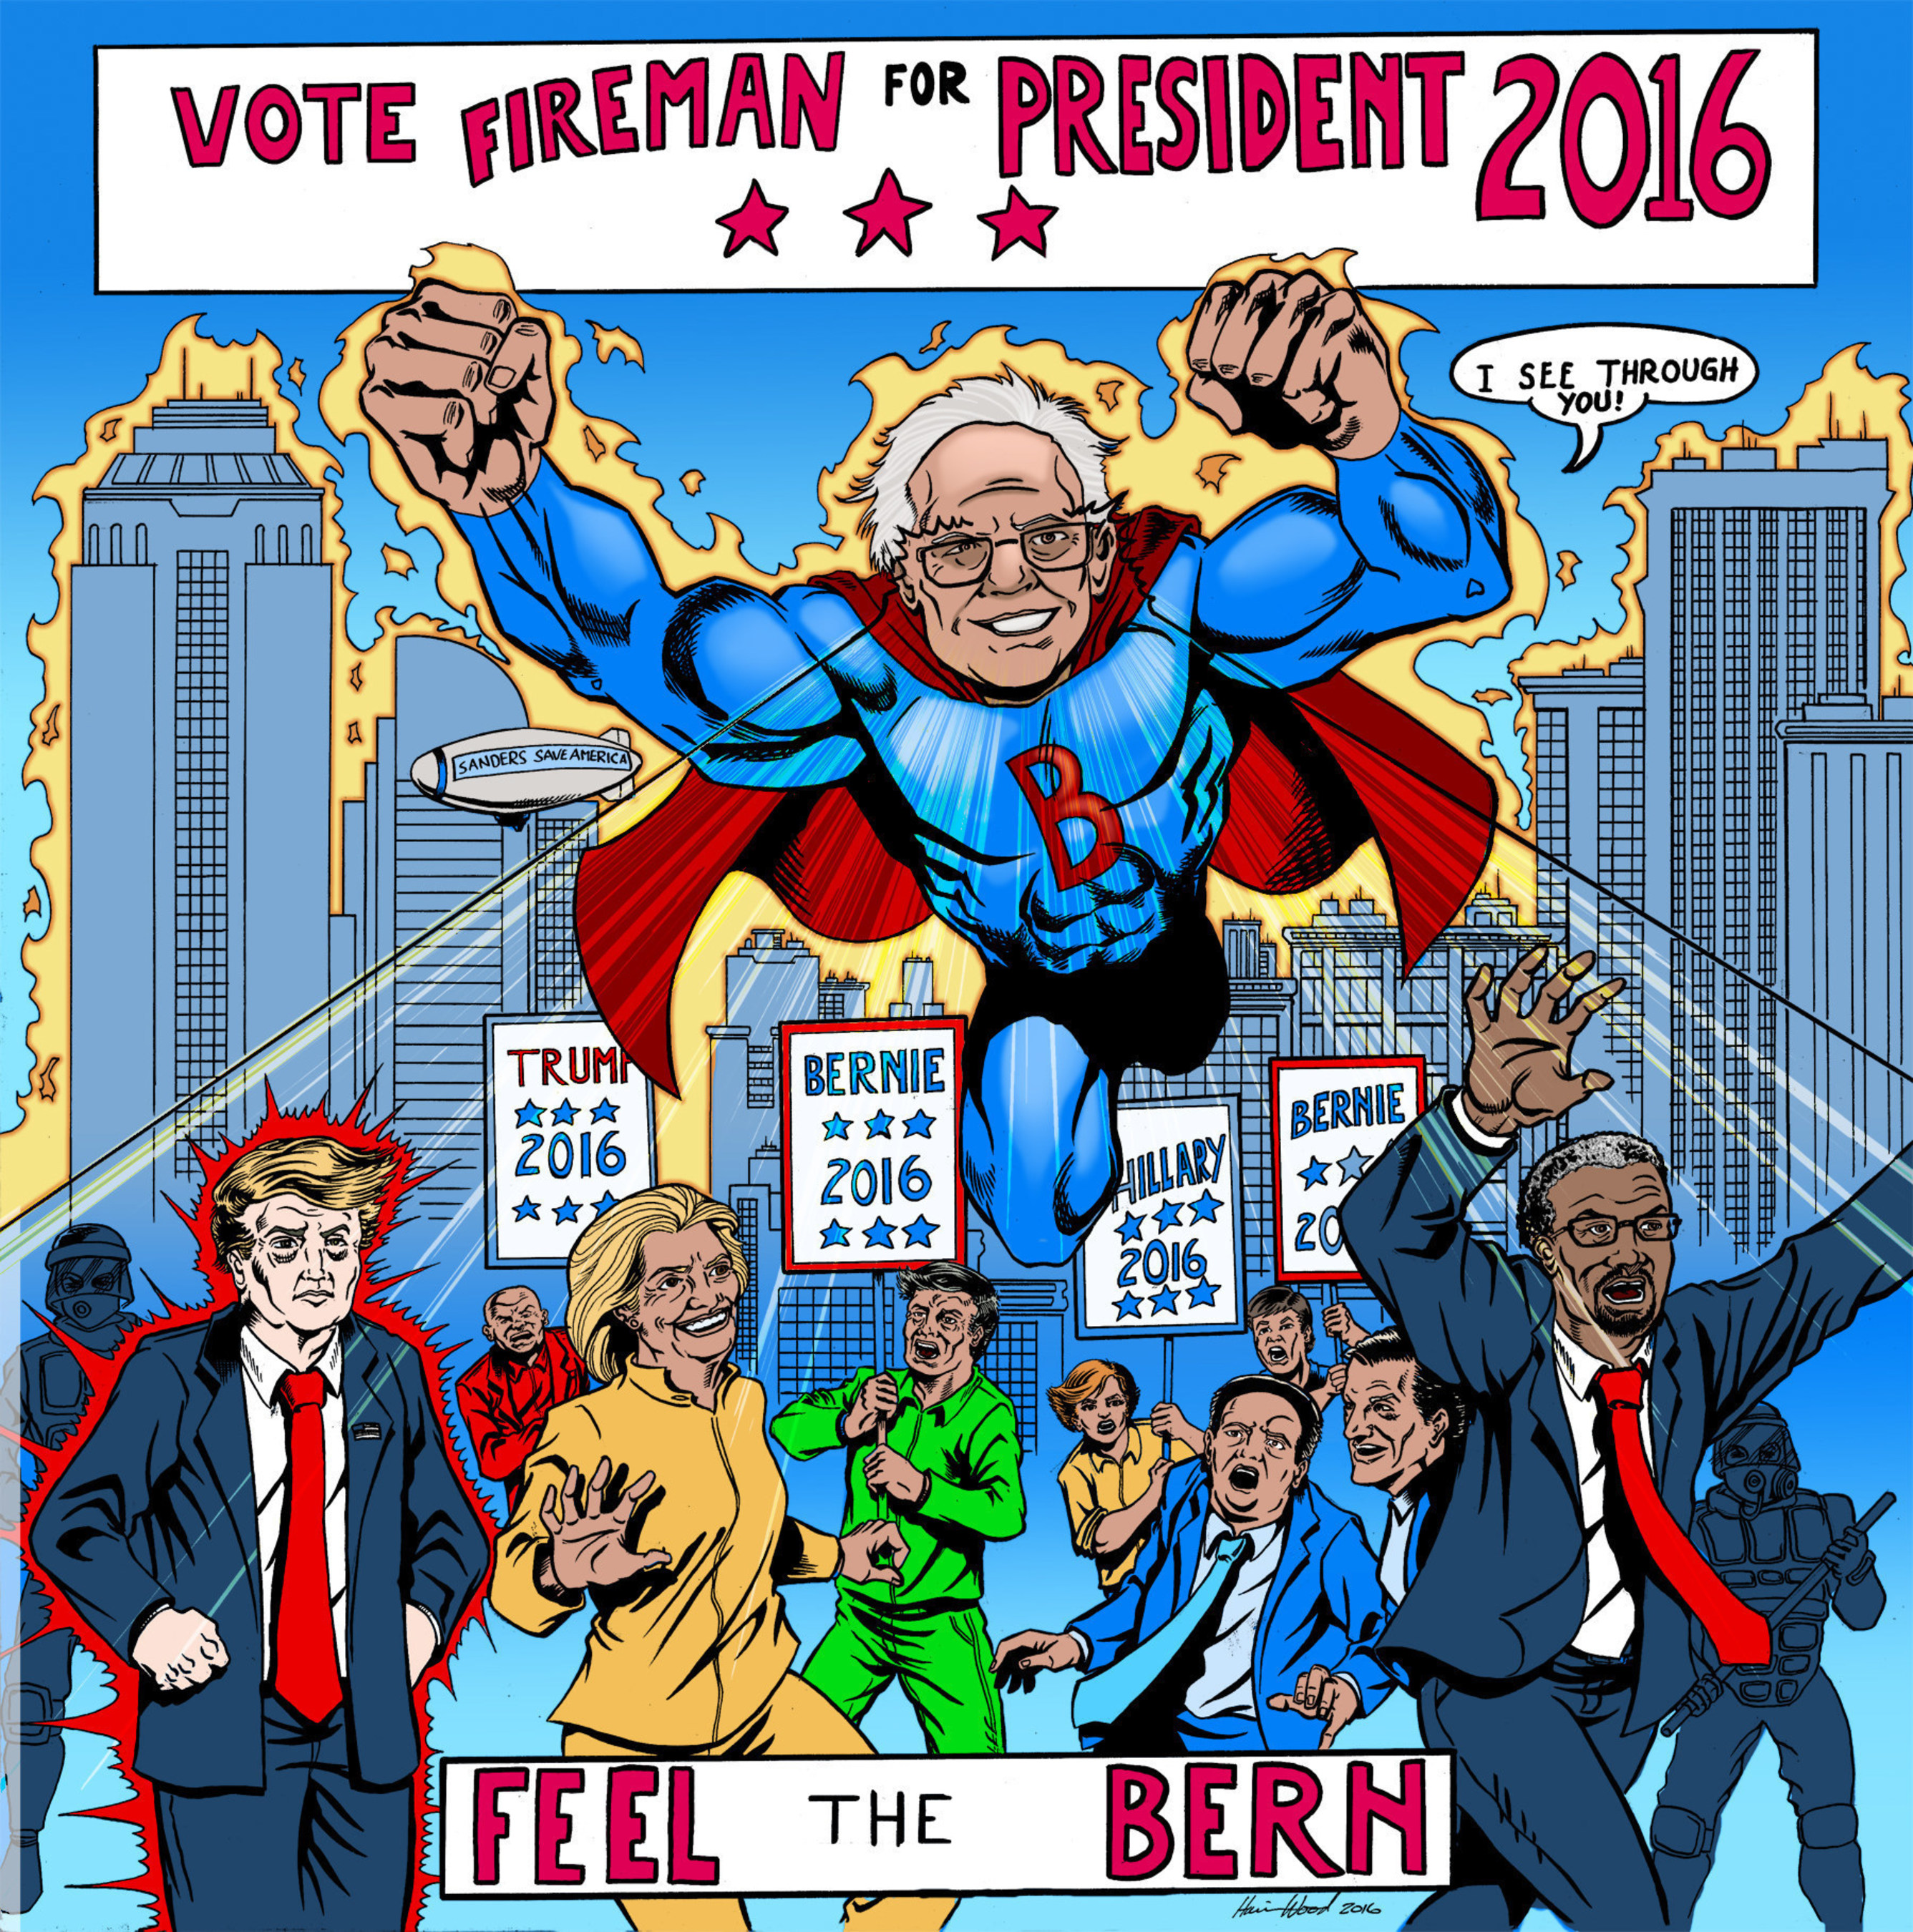 Notorious Pro-Bernie Sanders PAC Strikes Back with Political Satire Comic Series in New York Times